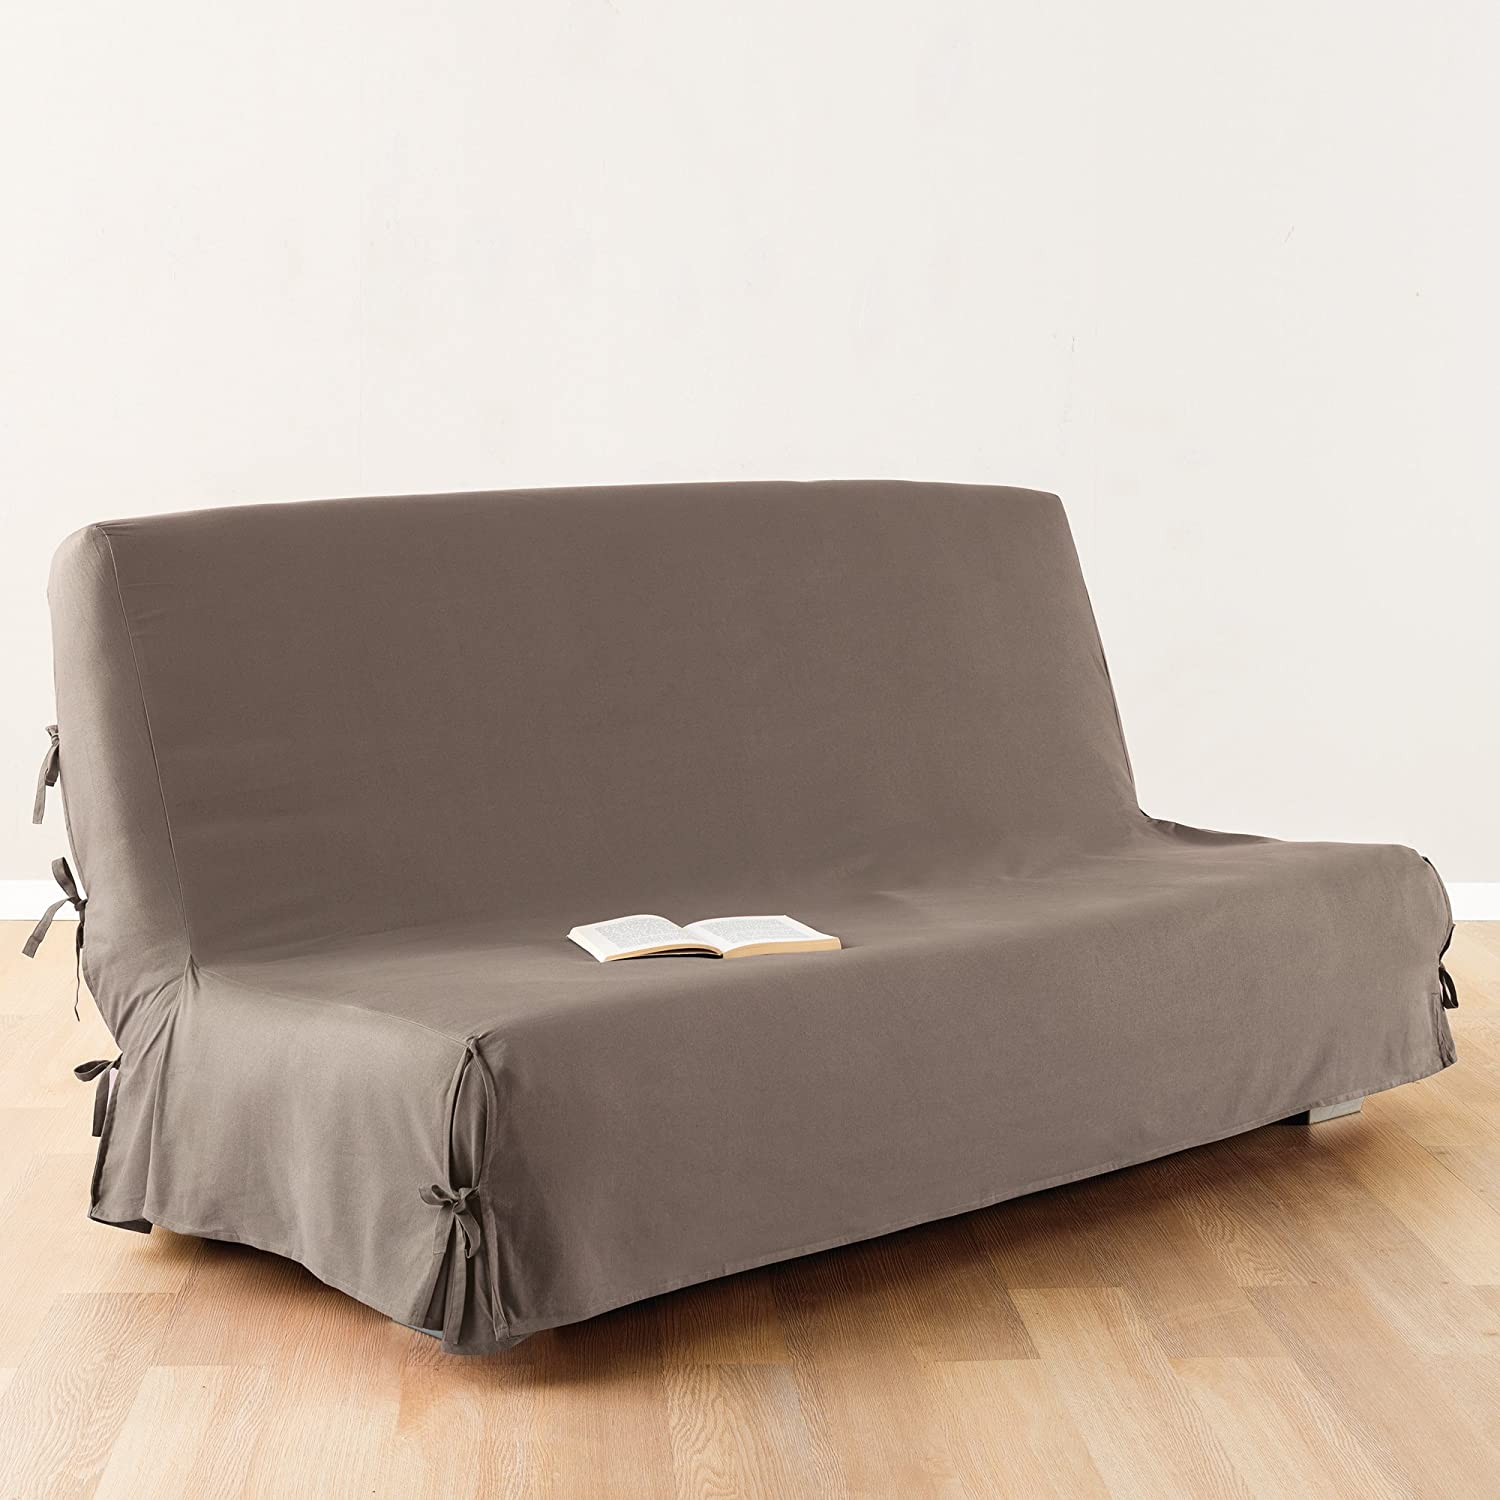 Sofa bed Futon cover 100 % cotton colour TAUPE Amazon